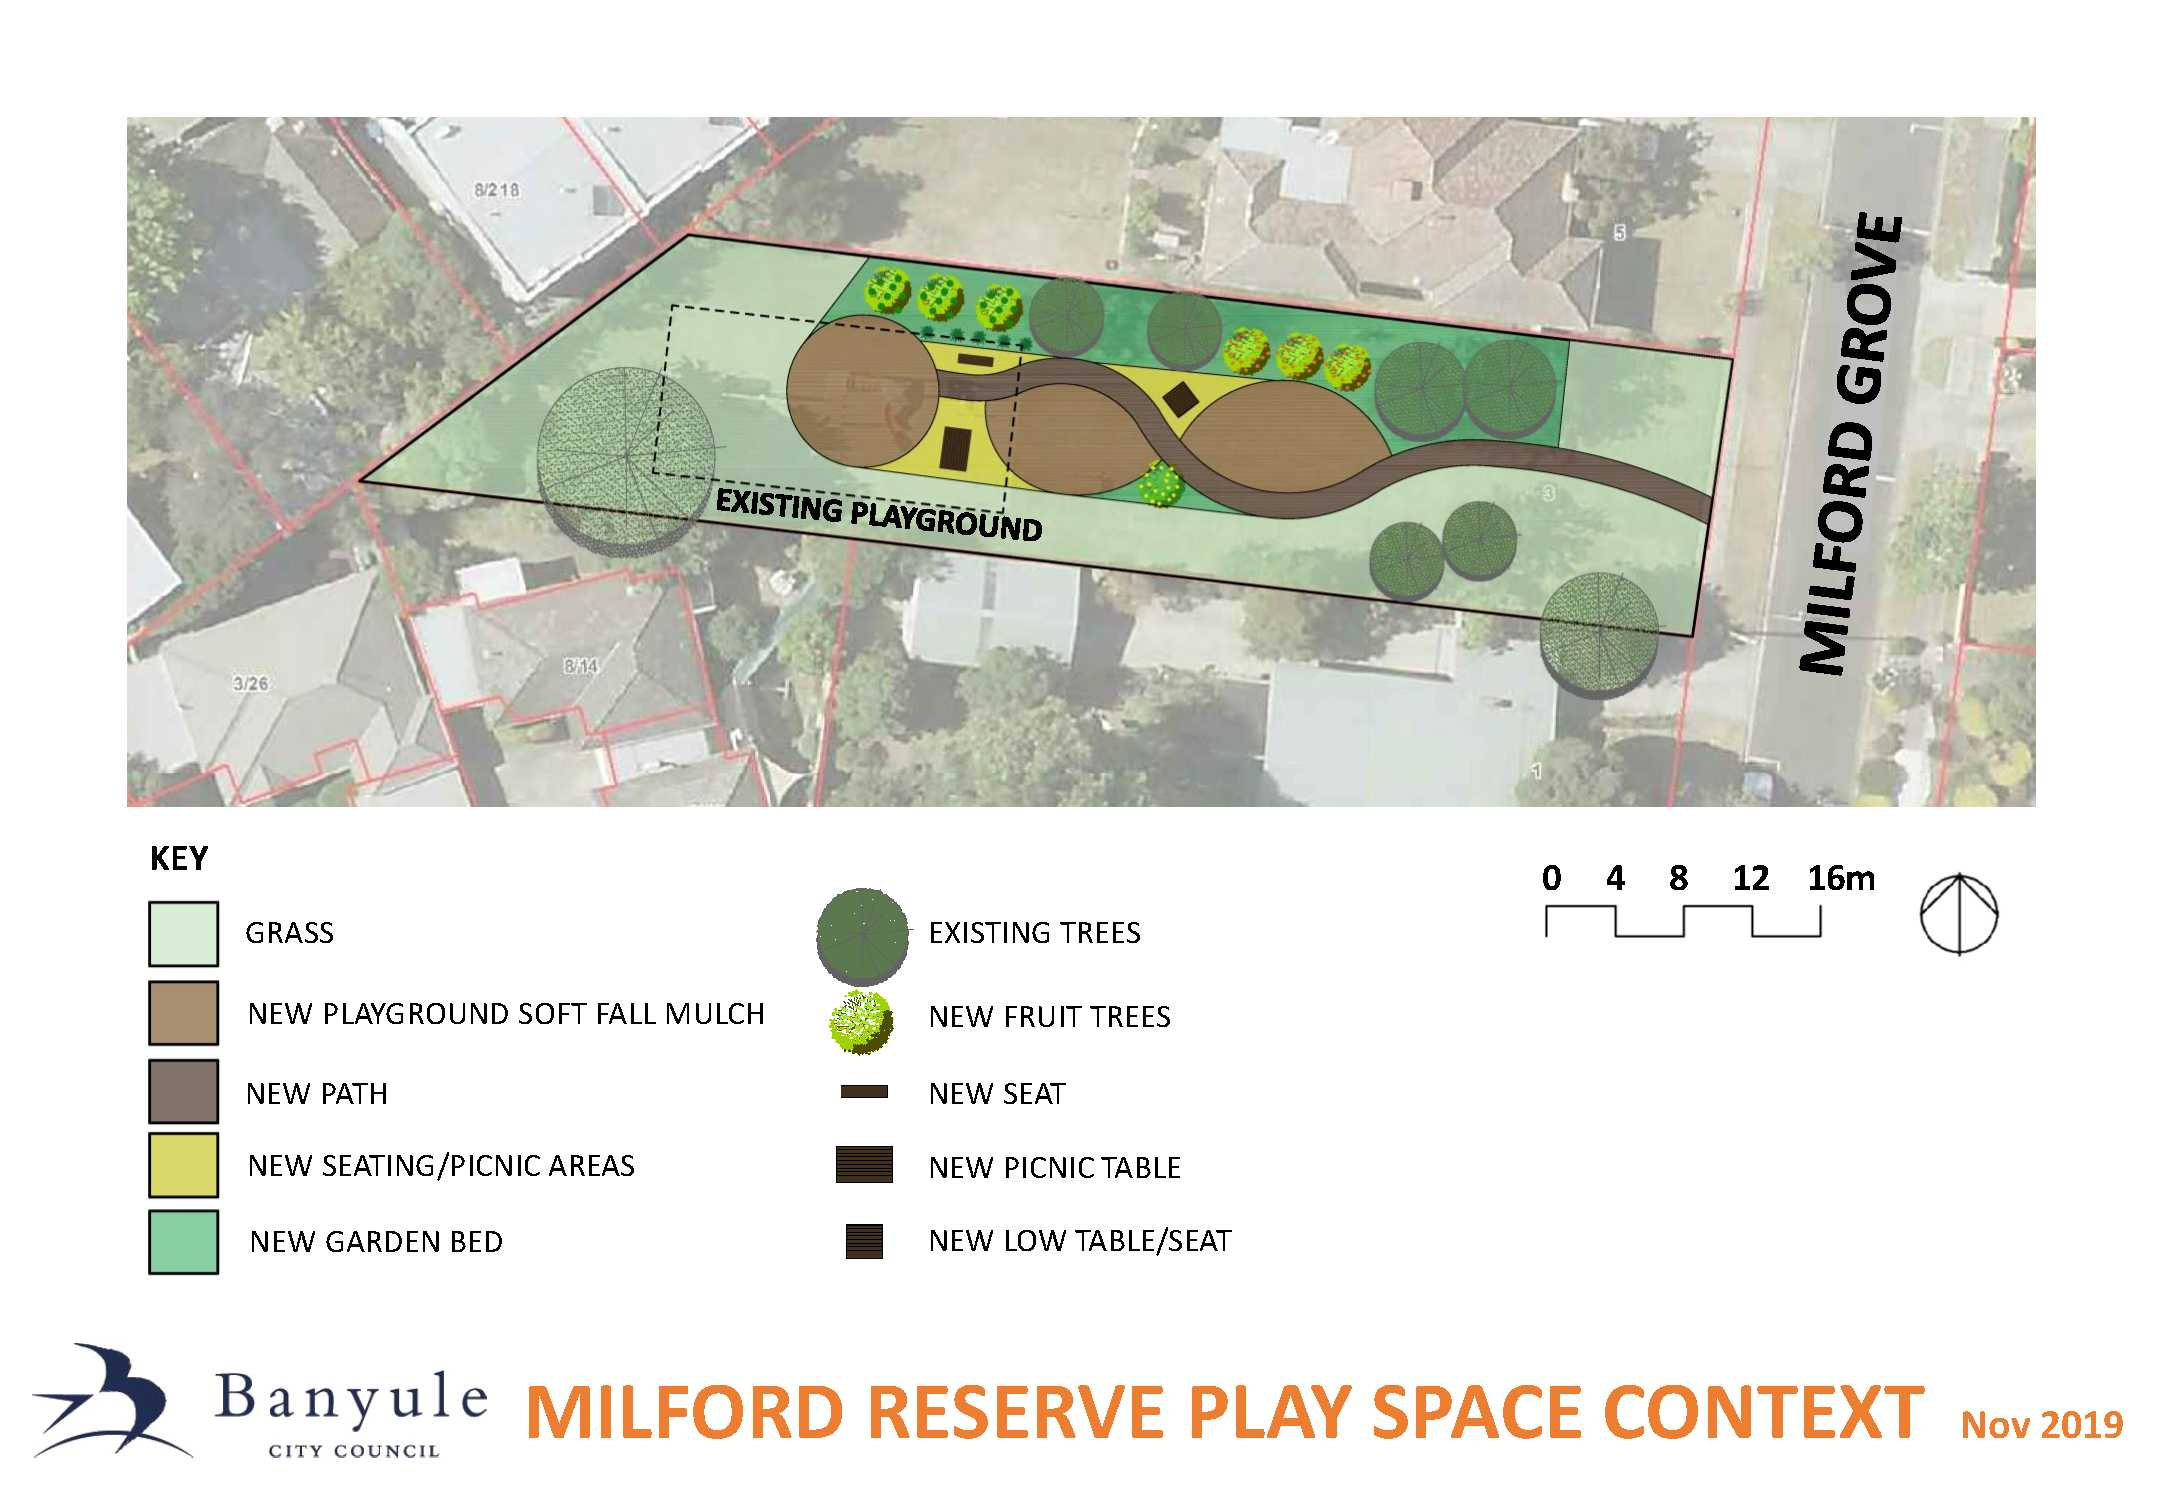 Milfred Reserve - Playground renewal context plan